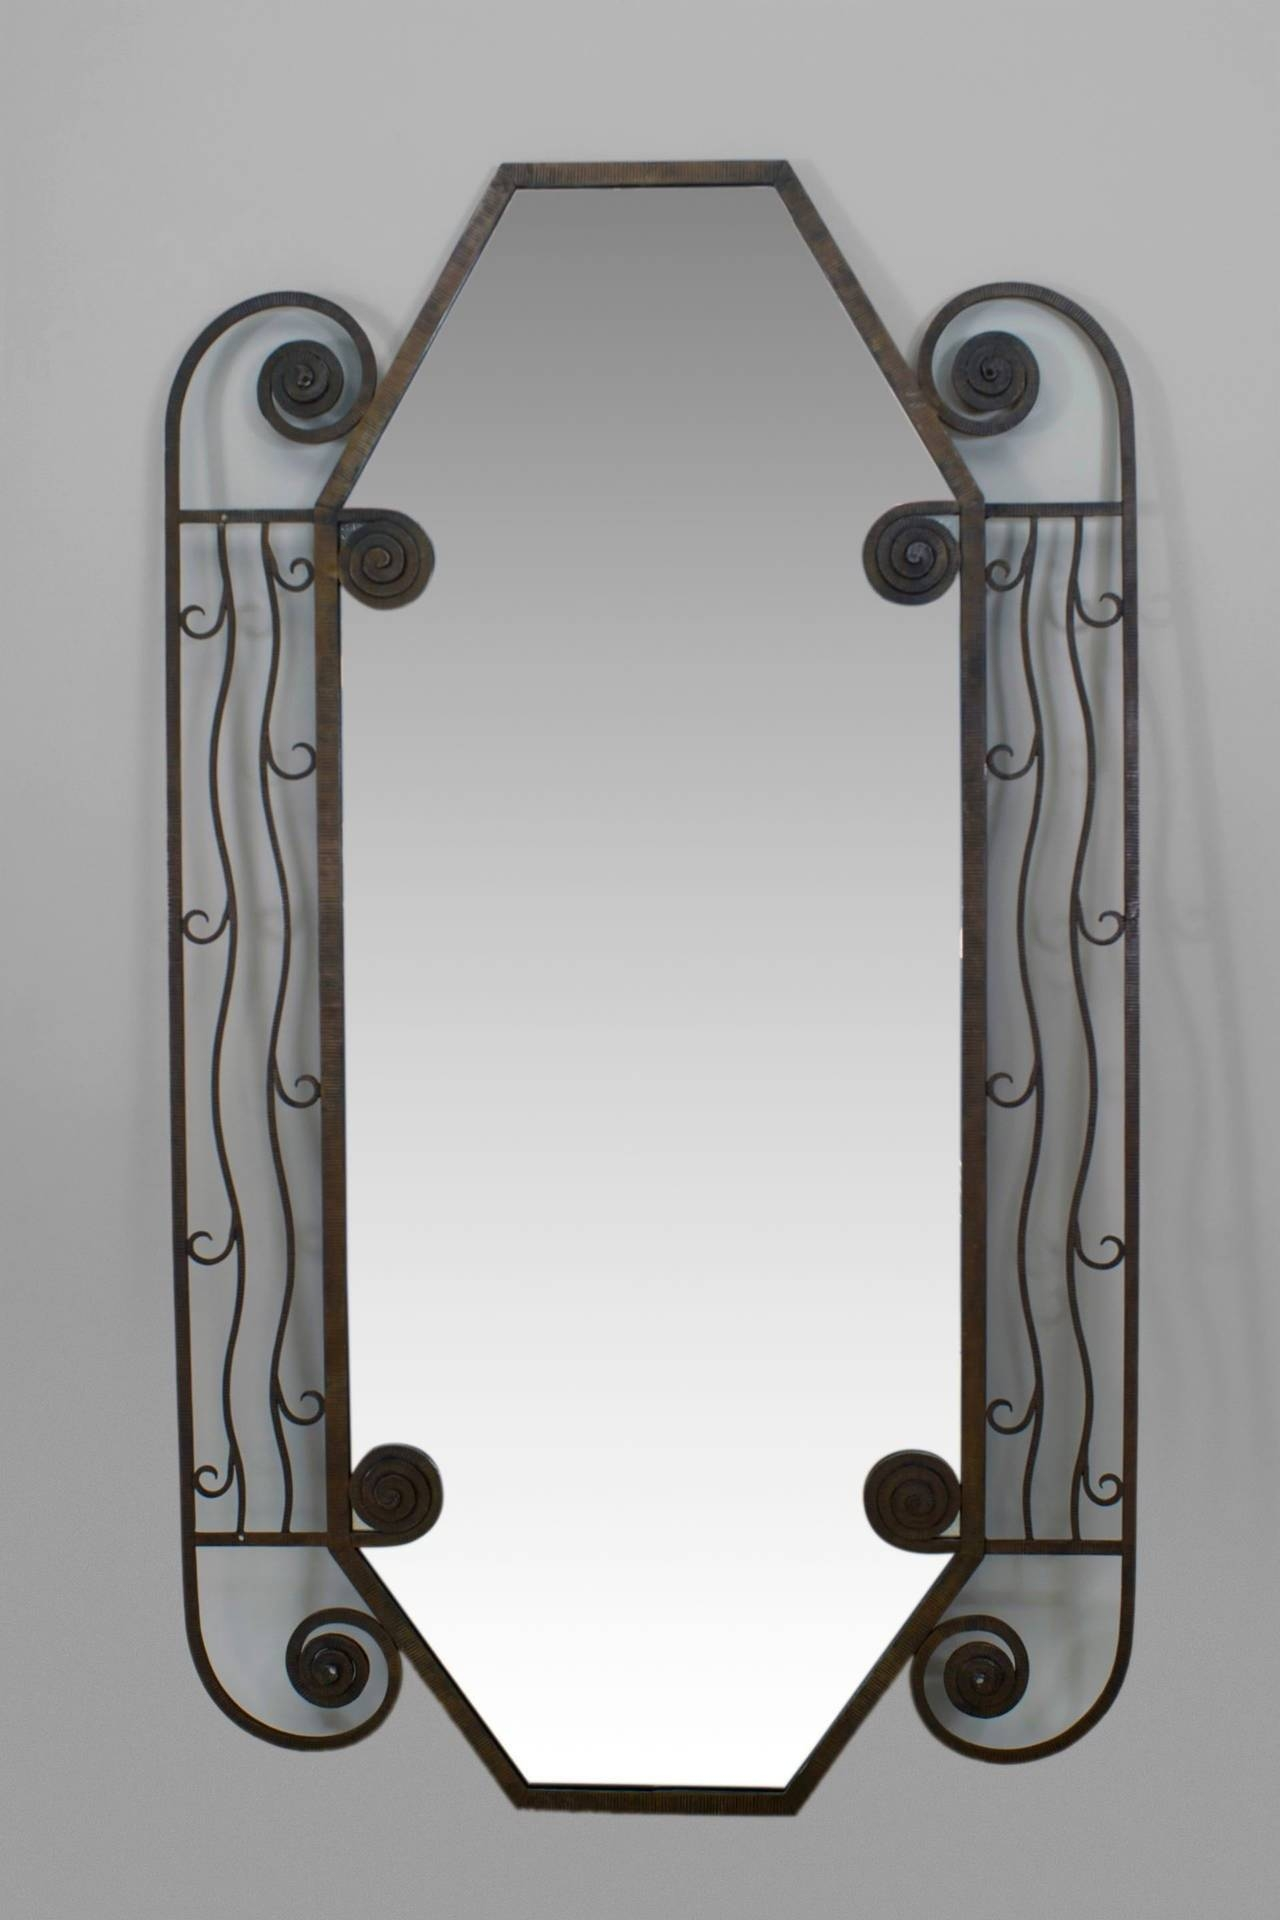 1930's French Art Deco Iron Wall Mirror For Sale At 1Stdibs with Art Deco Wall Mirrors (Image 2 of 25)